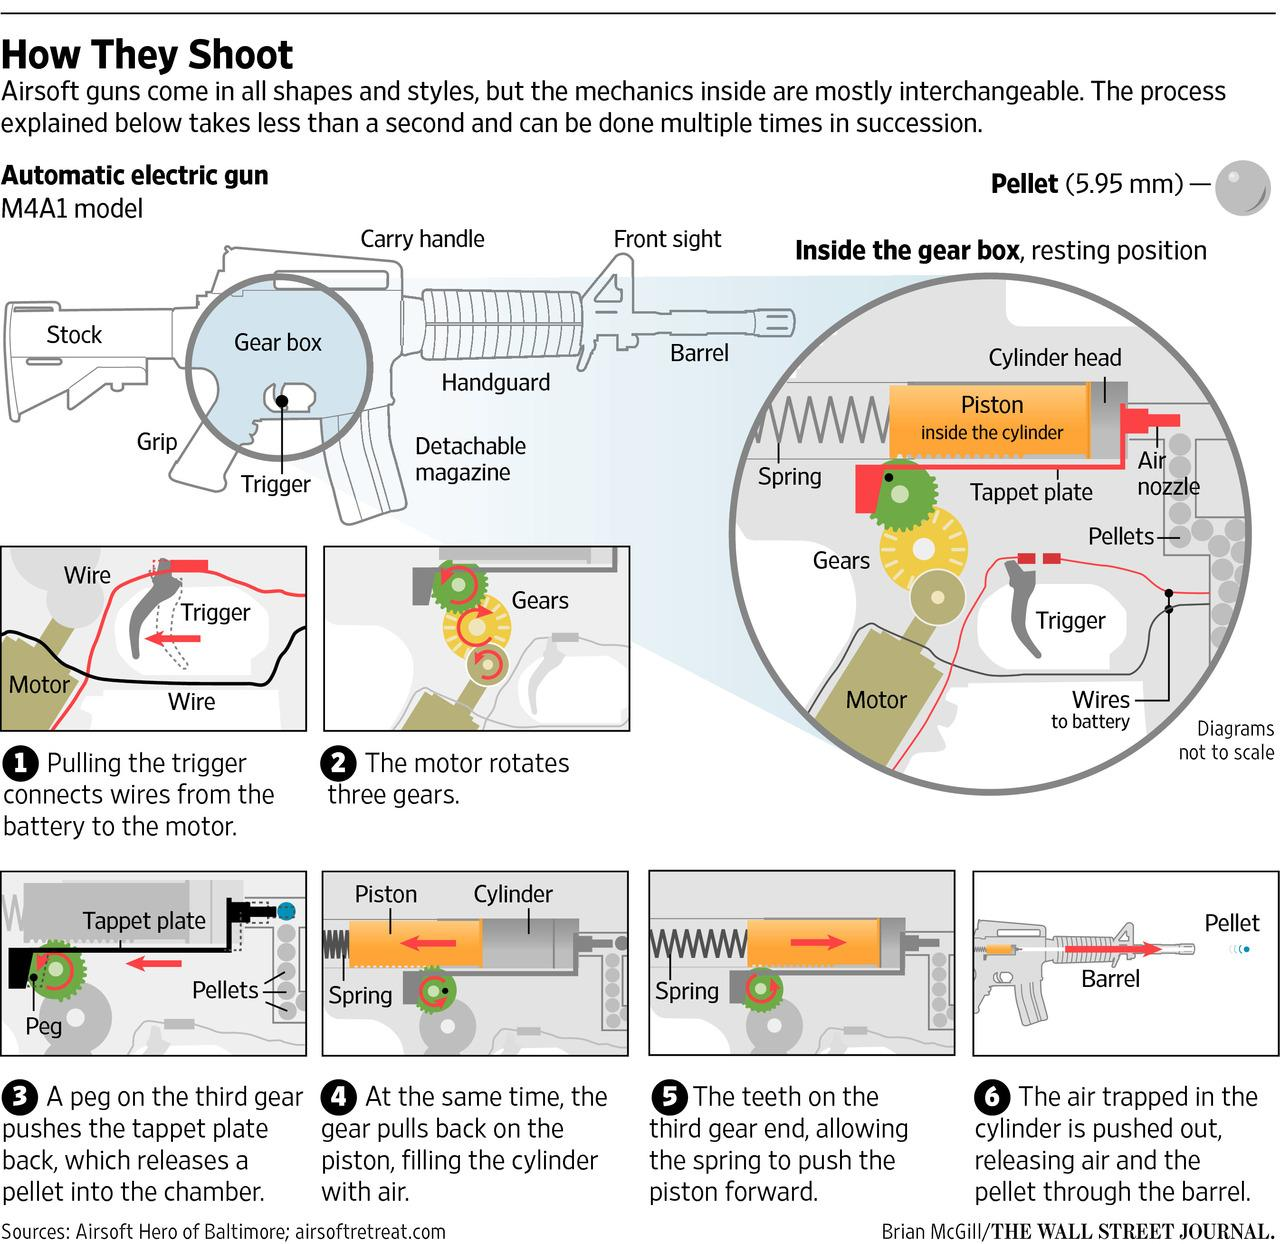 Wsj Graphics On Twitter Popularity Of Airsoft Guns Has Led To A Mcgill Wiring Diagram Rise In Eye Injuries Study Says Http Tco 0s6y0lwut1 Via Lxfyj6dglv